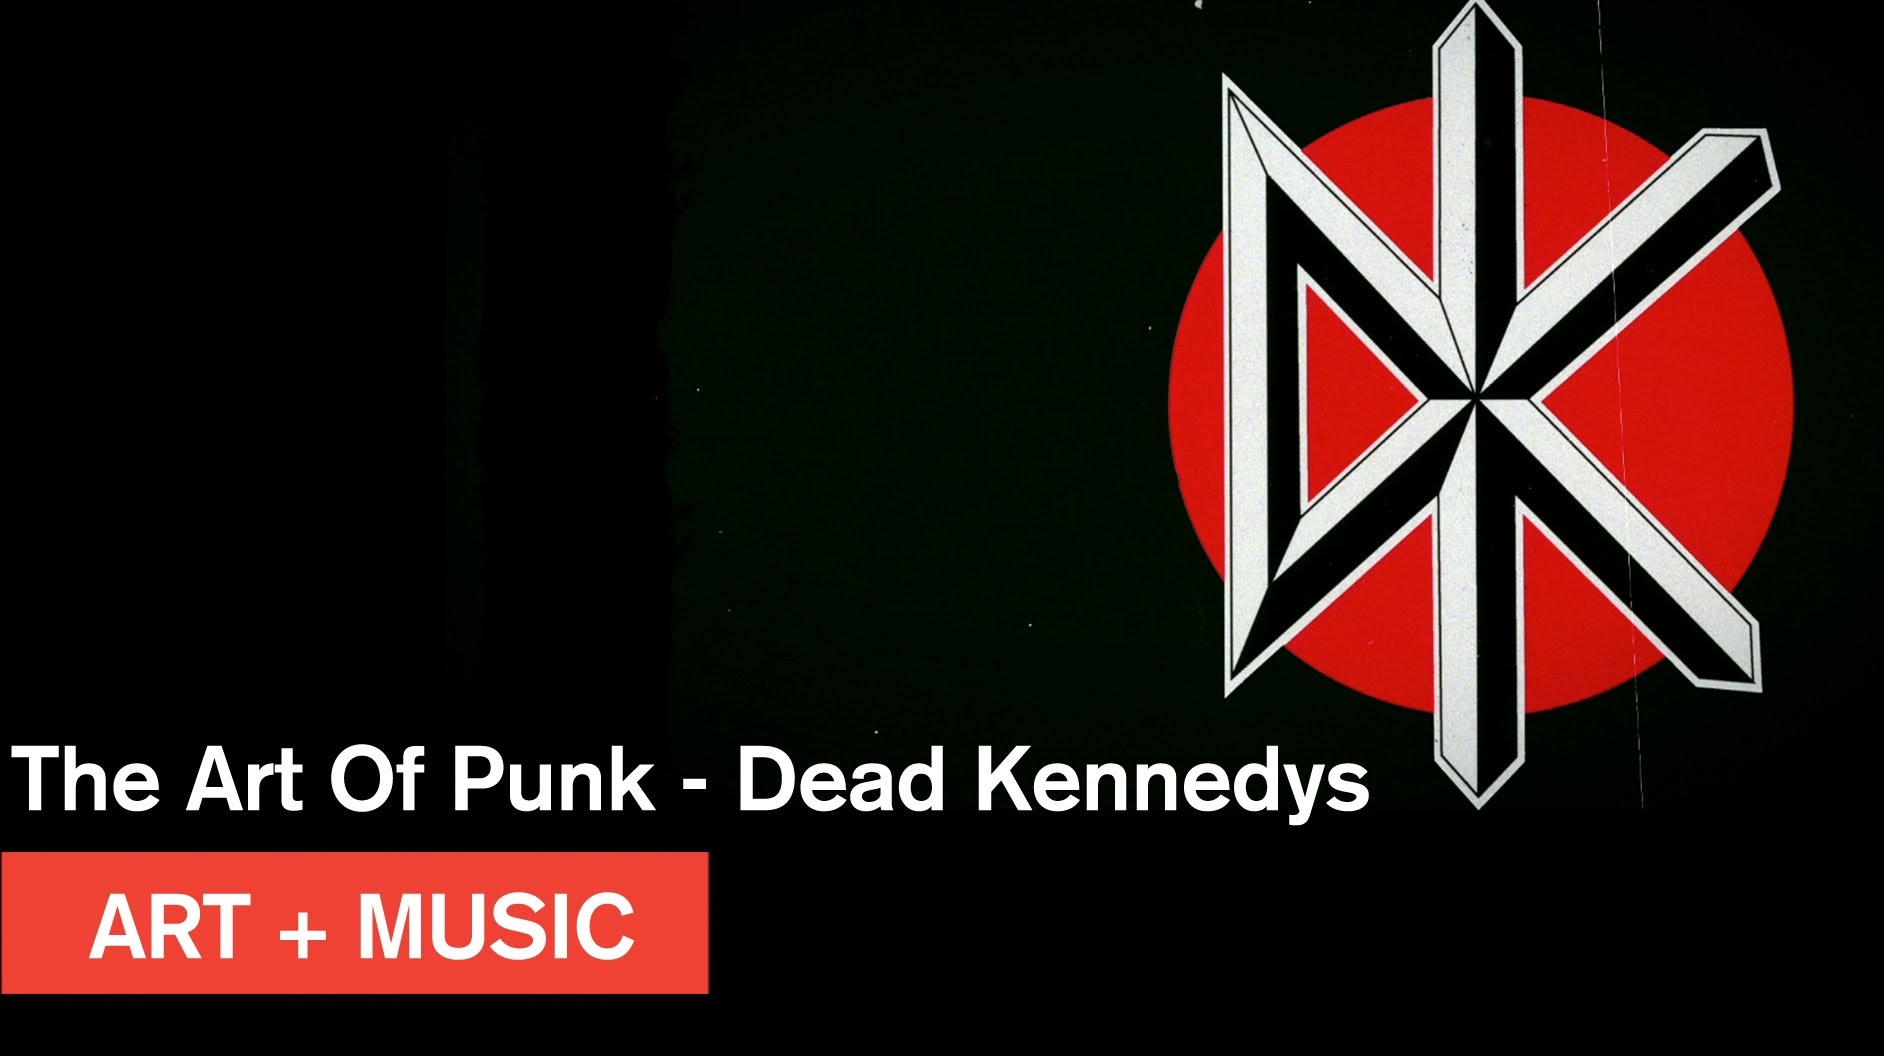 Winston Smith and the Art of Dead Kennedys on The Art of Punk